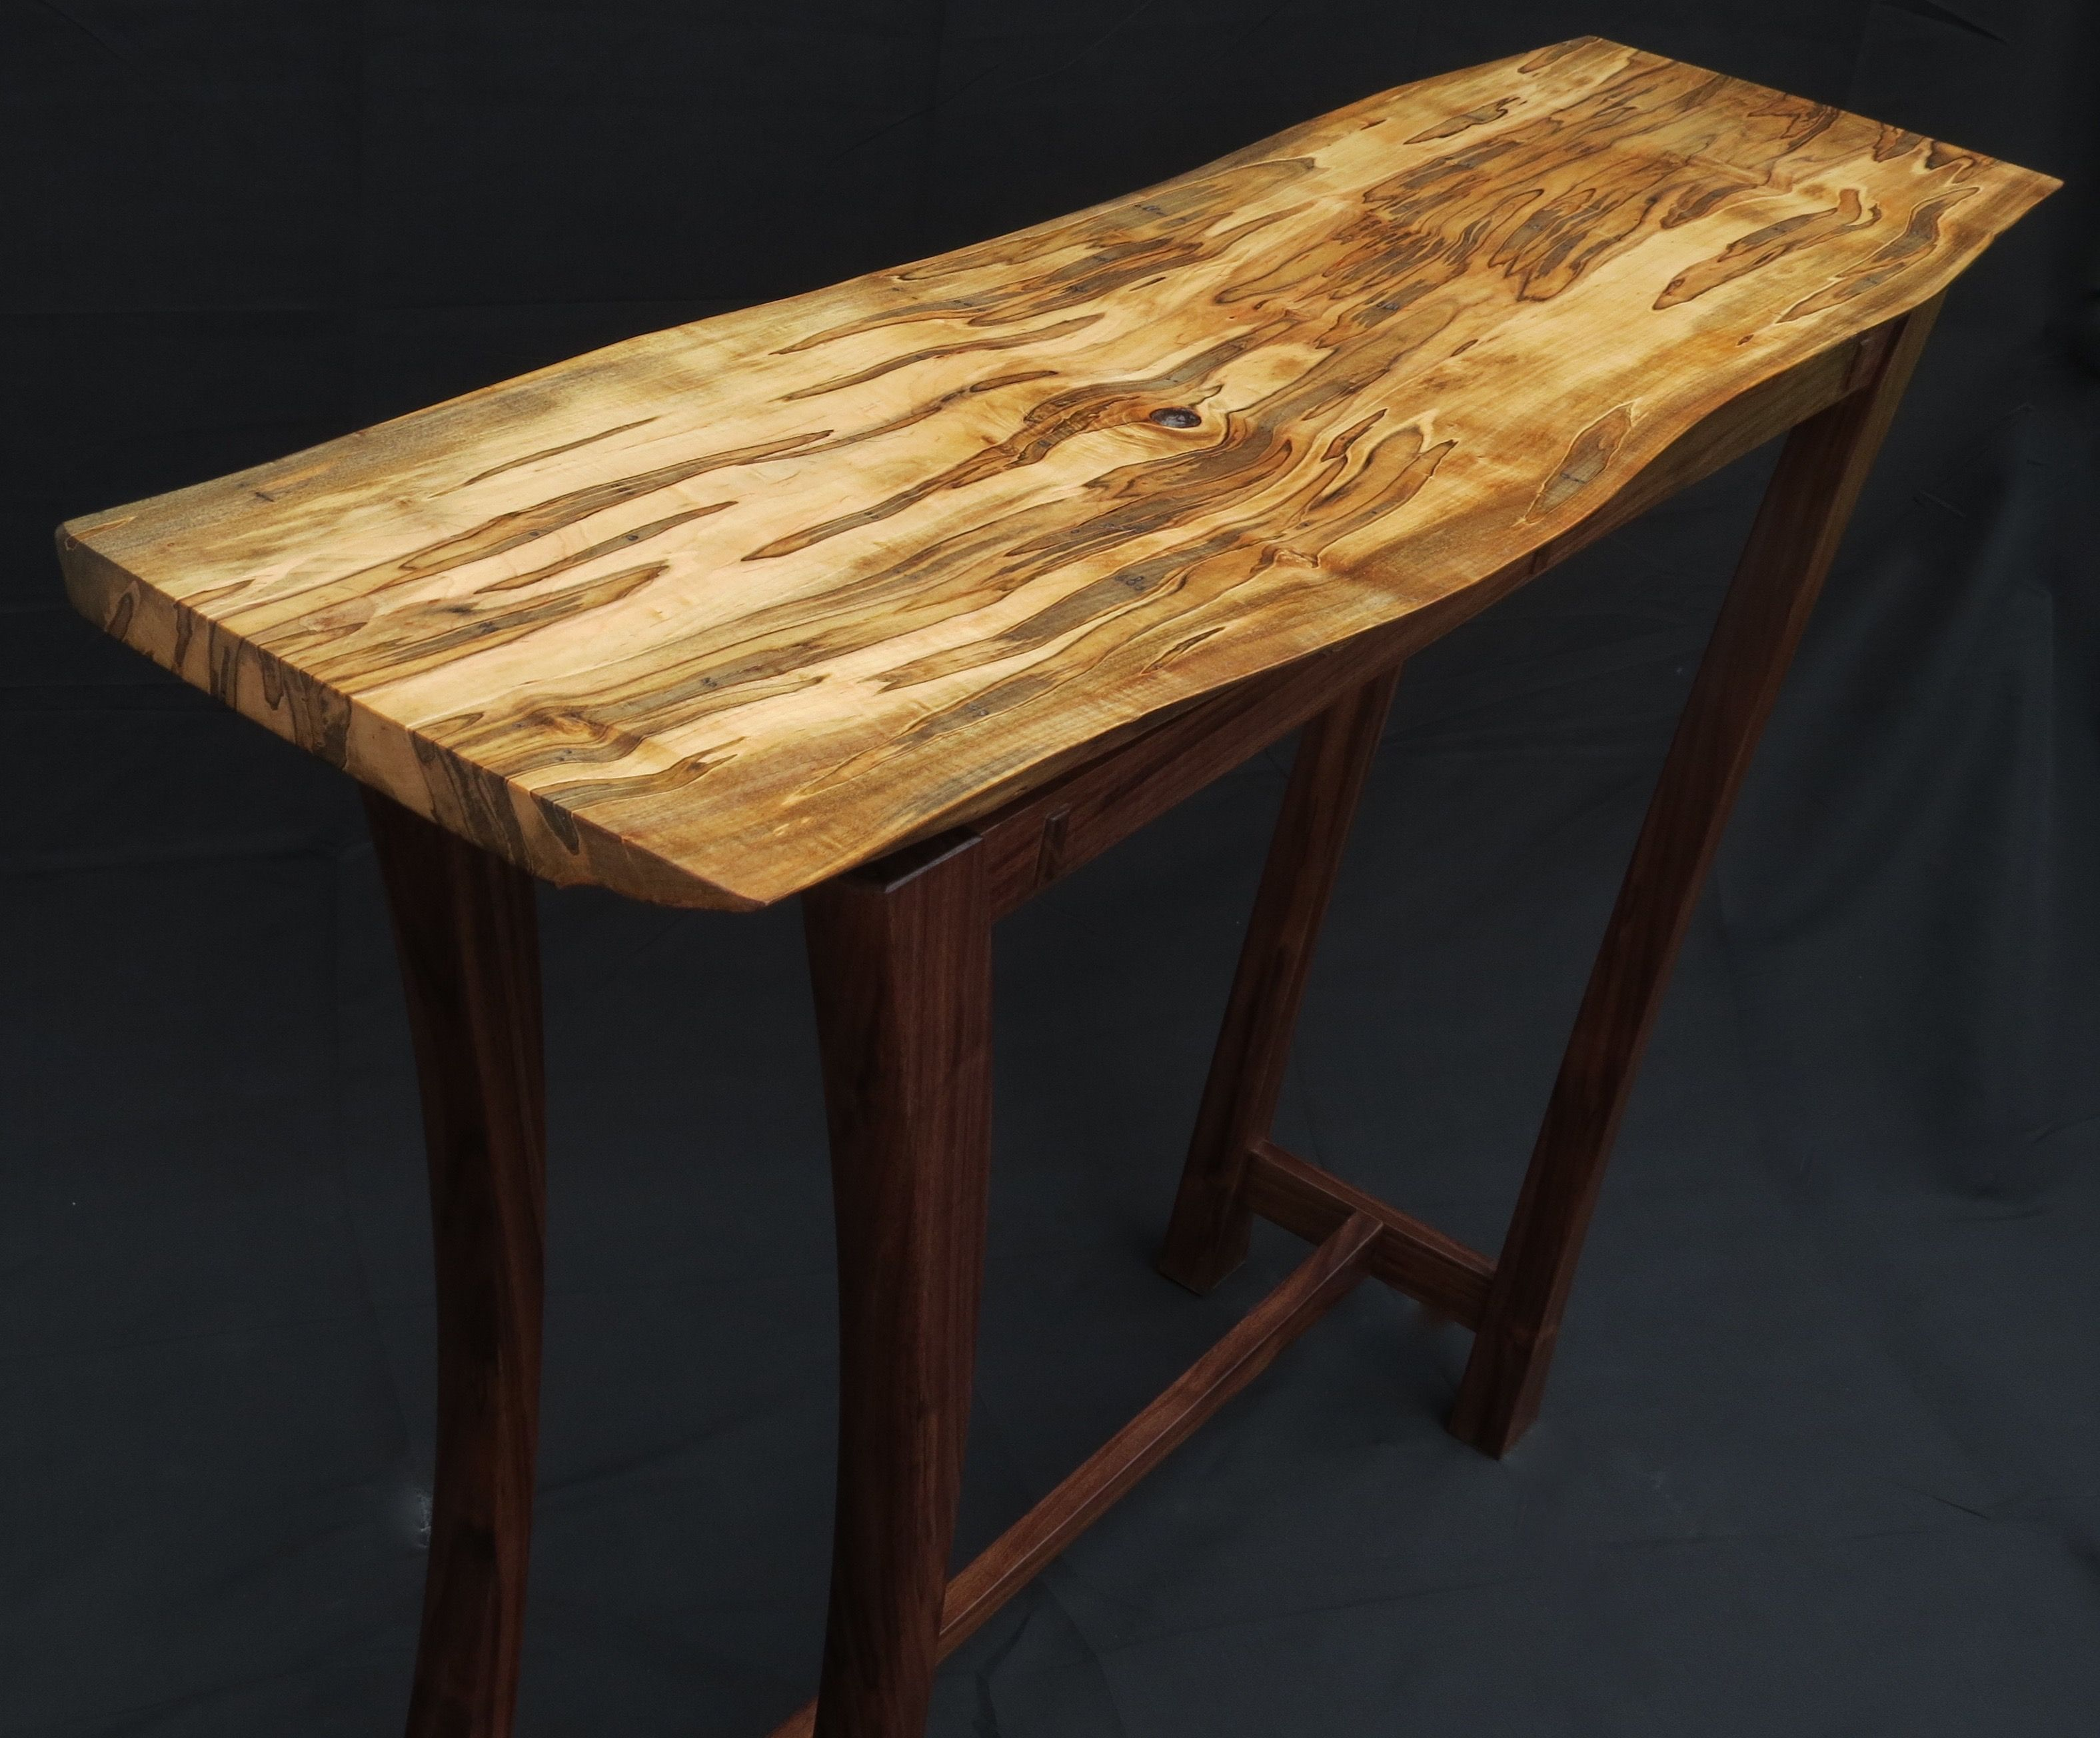 Hand Made Live Edge Hall Entry Sofa Table By Glued Up Woodworking